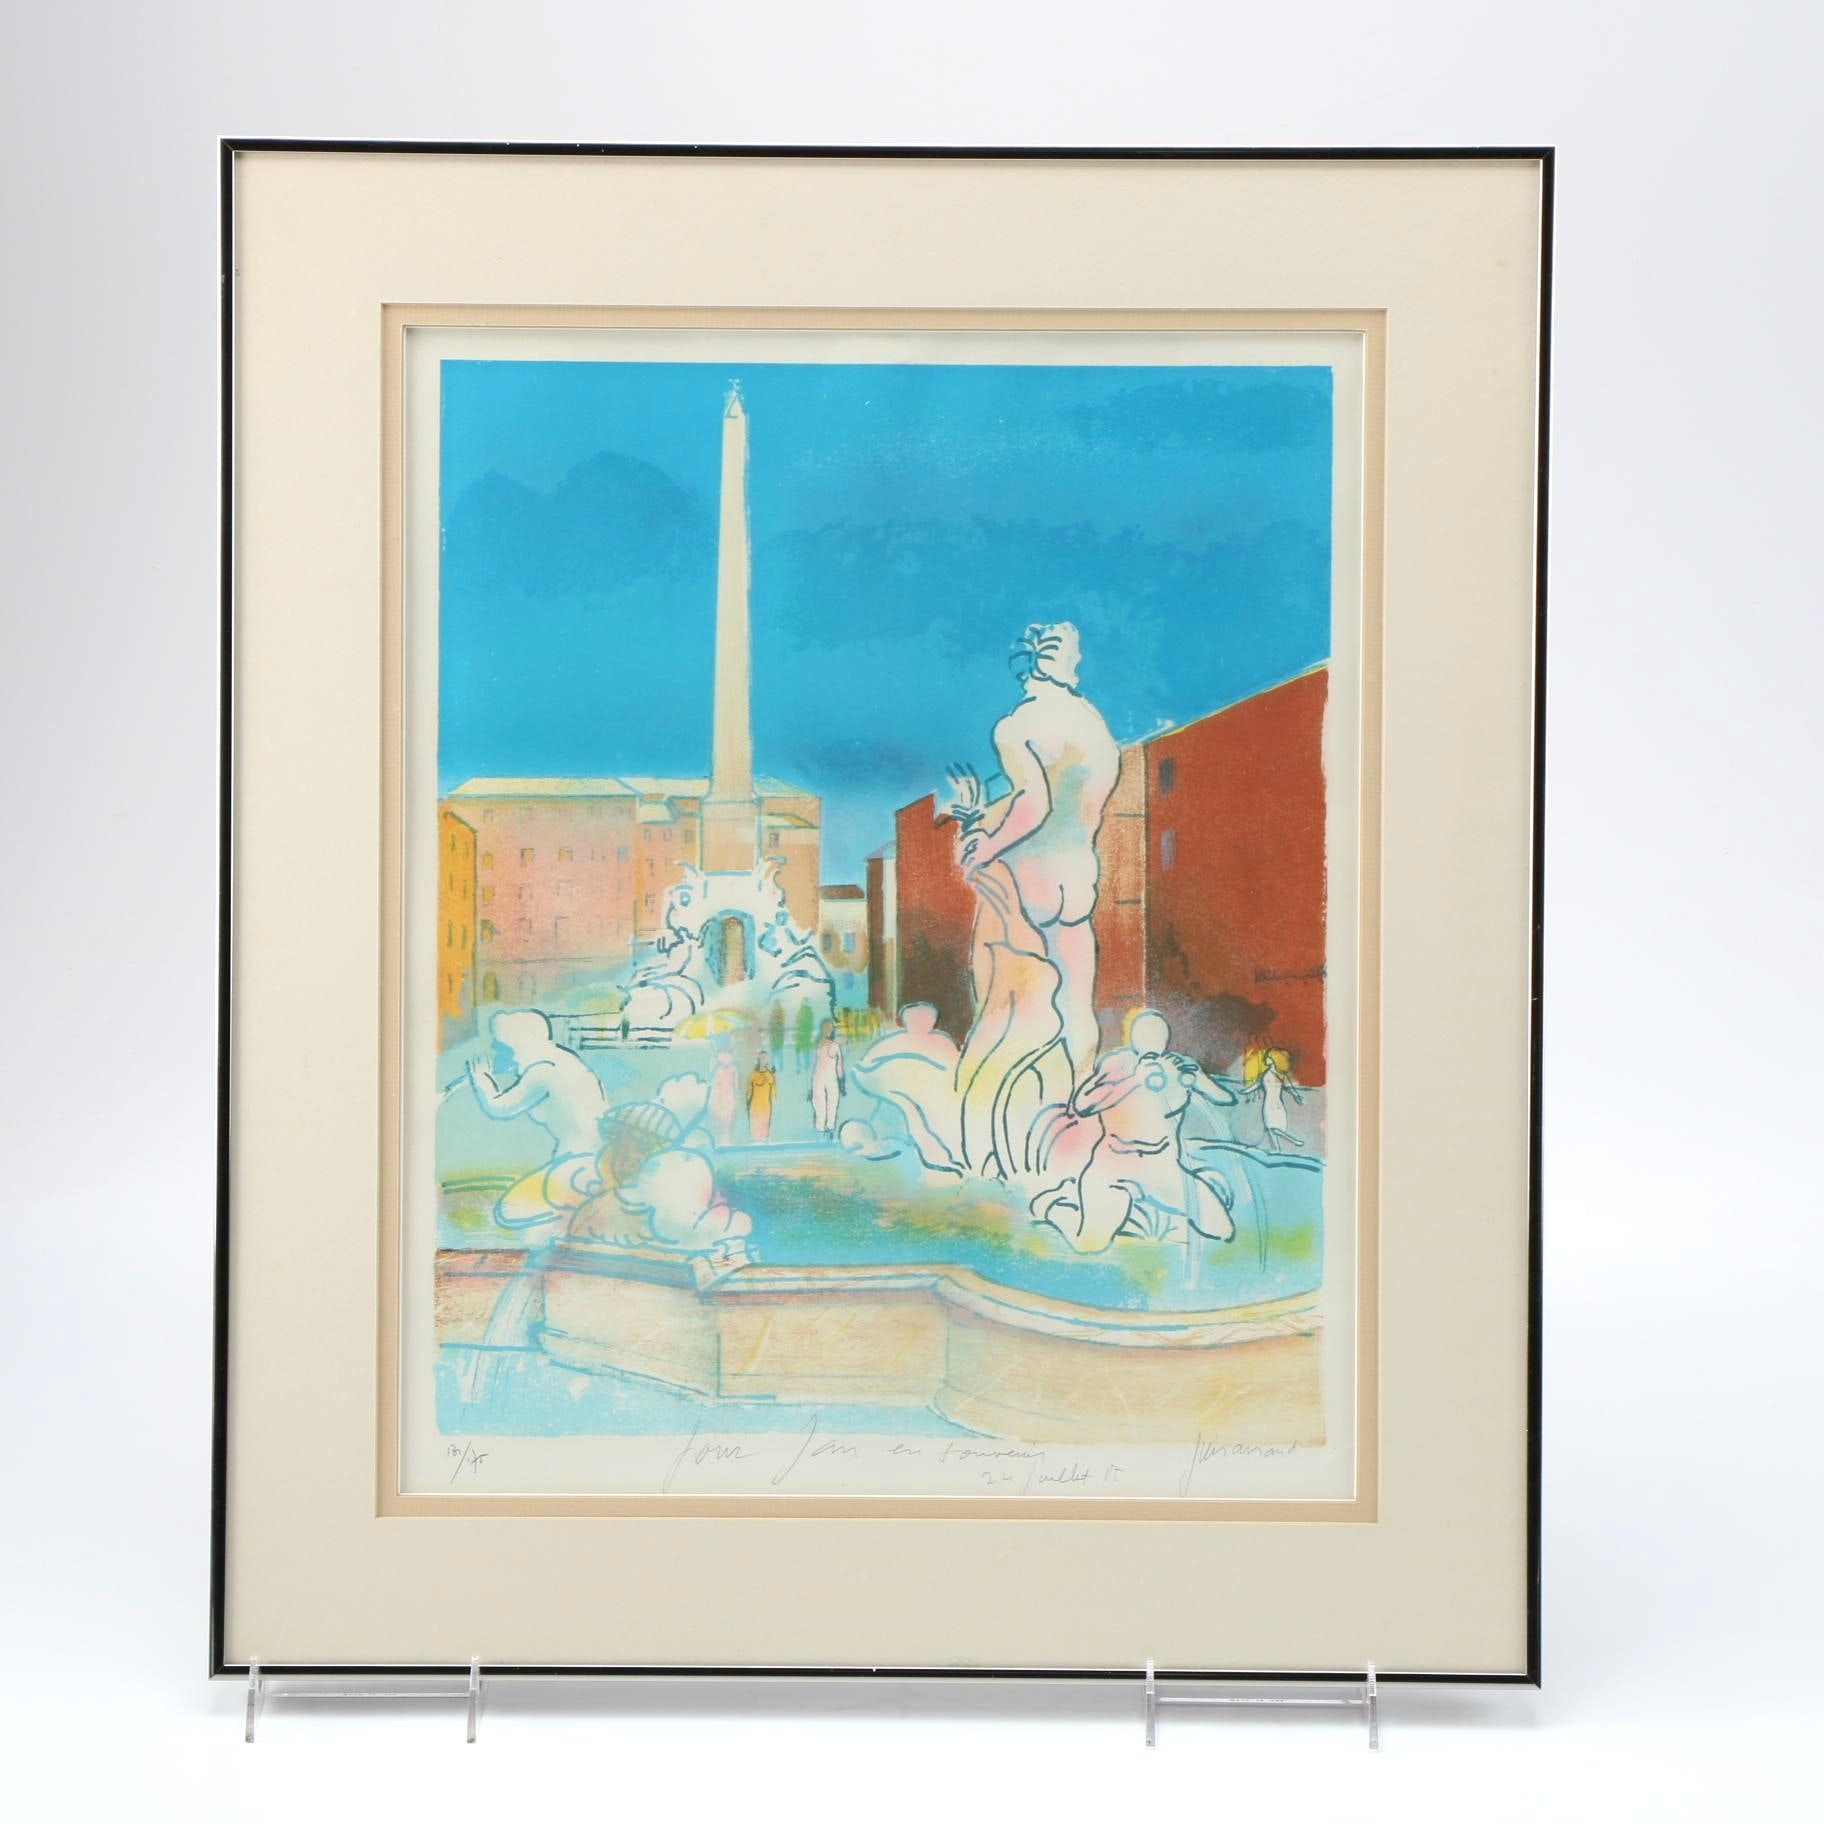 Limited Edition Paul Guiramand Lithograph